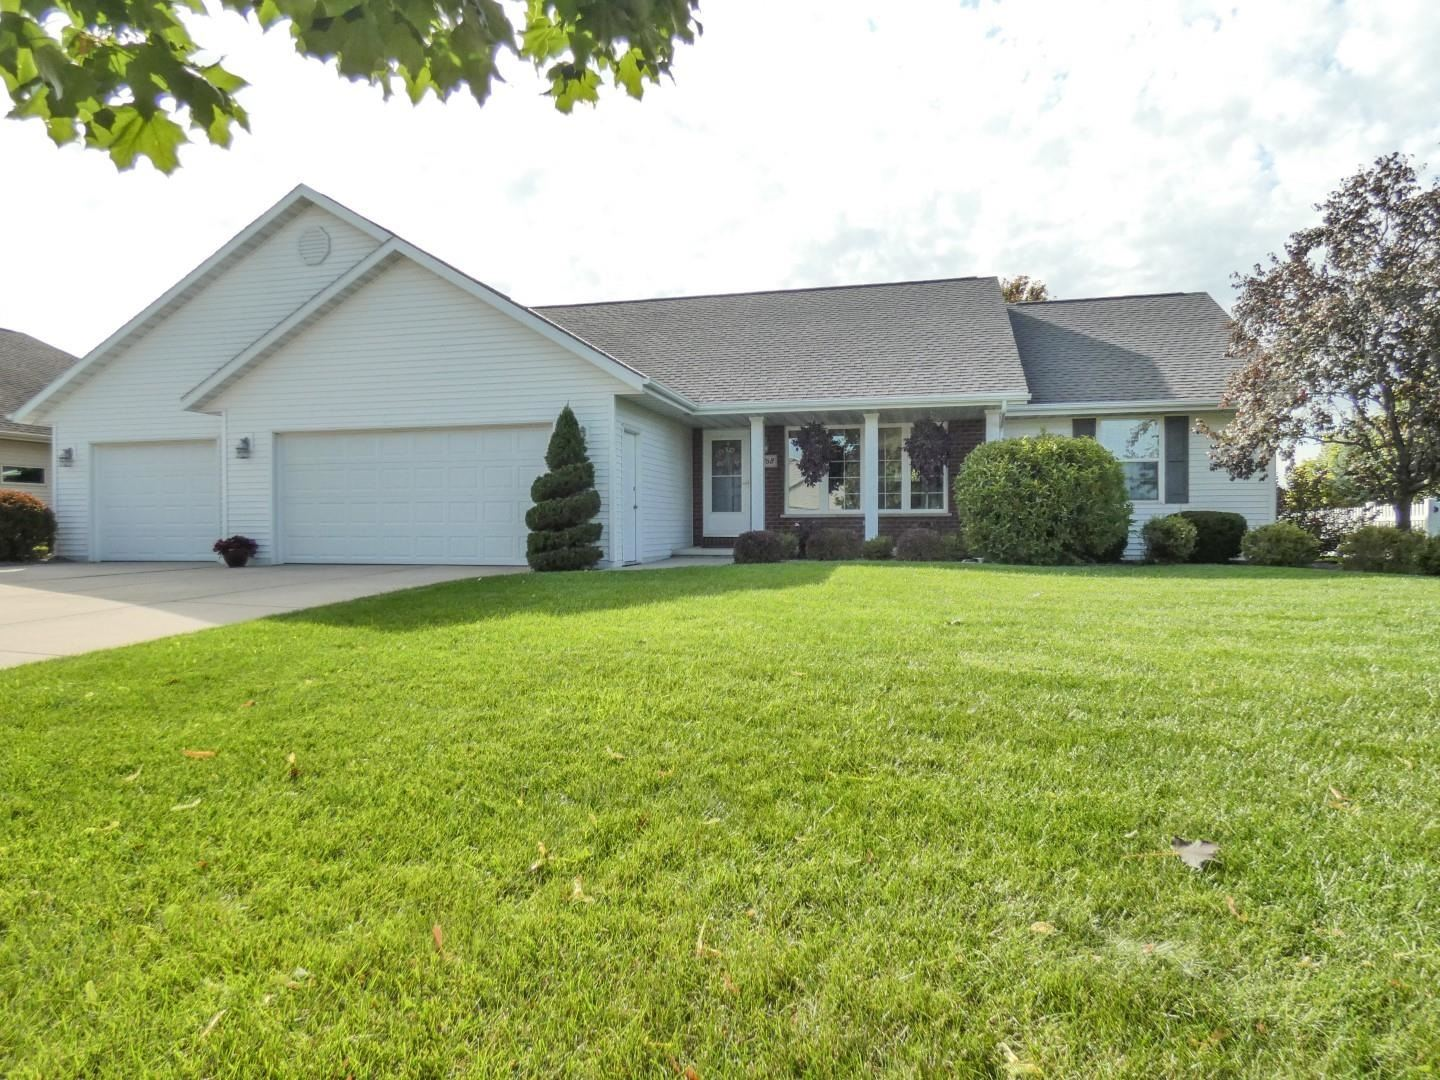 1768 TURQUOISE Trail, Green Bay, WI 54311 - MLS#: 50248648